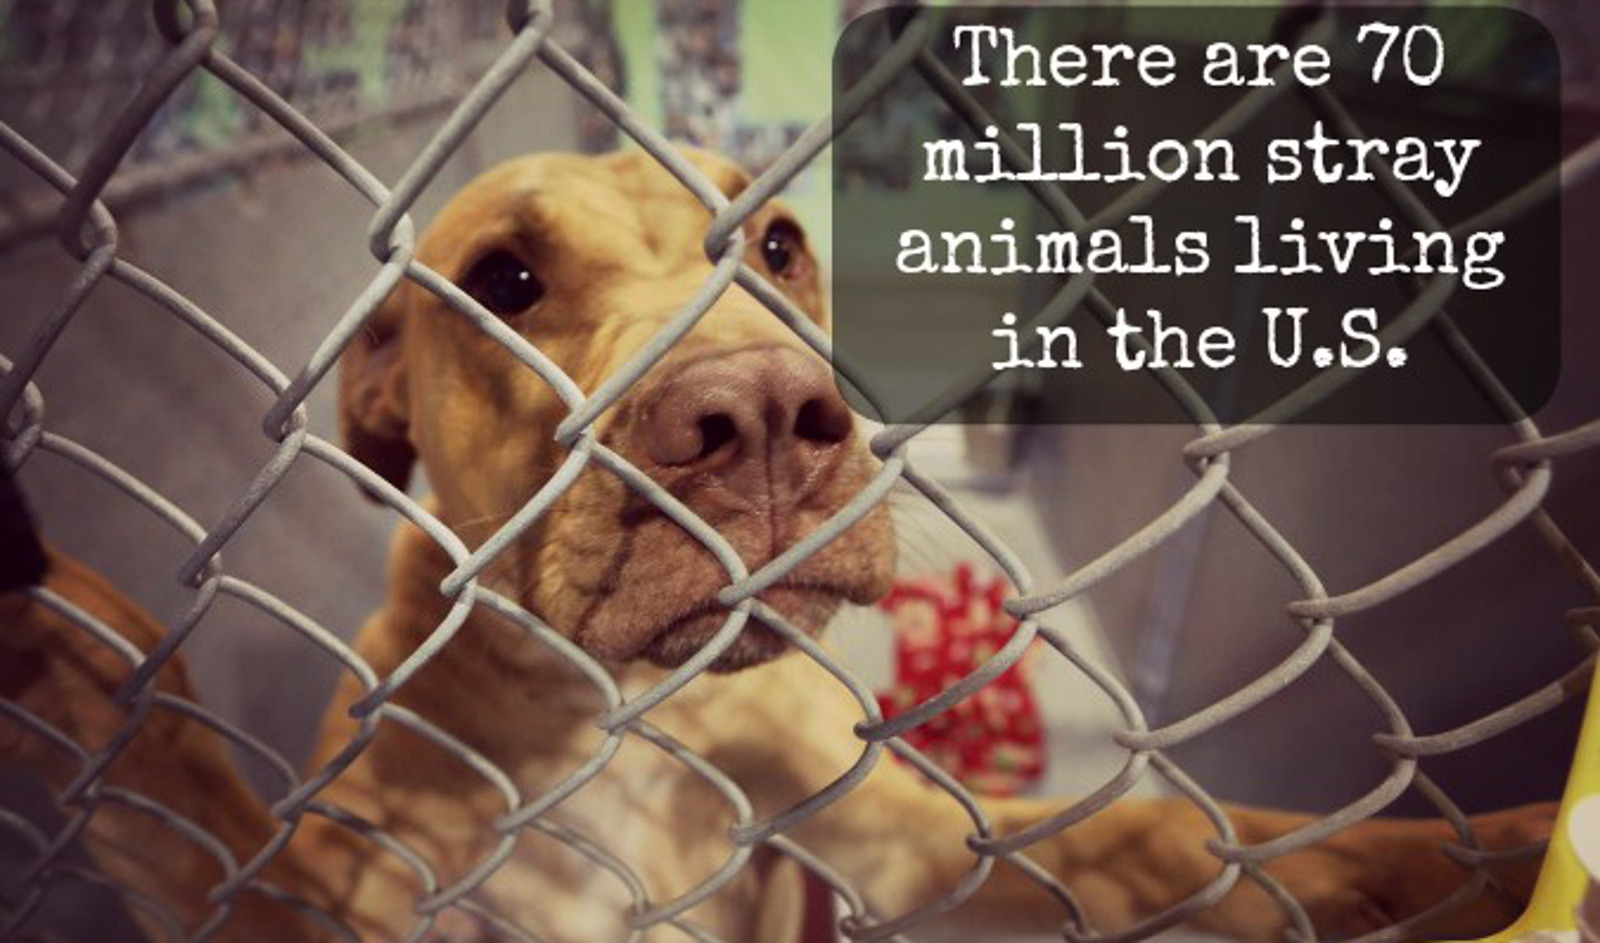 The Faces Behind Homeless Animal Statistics